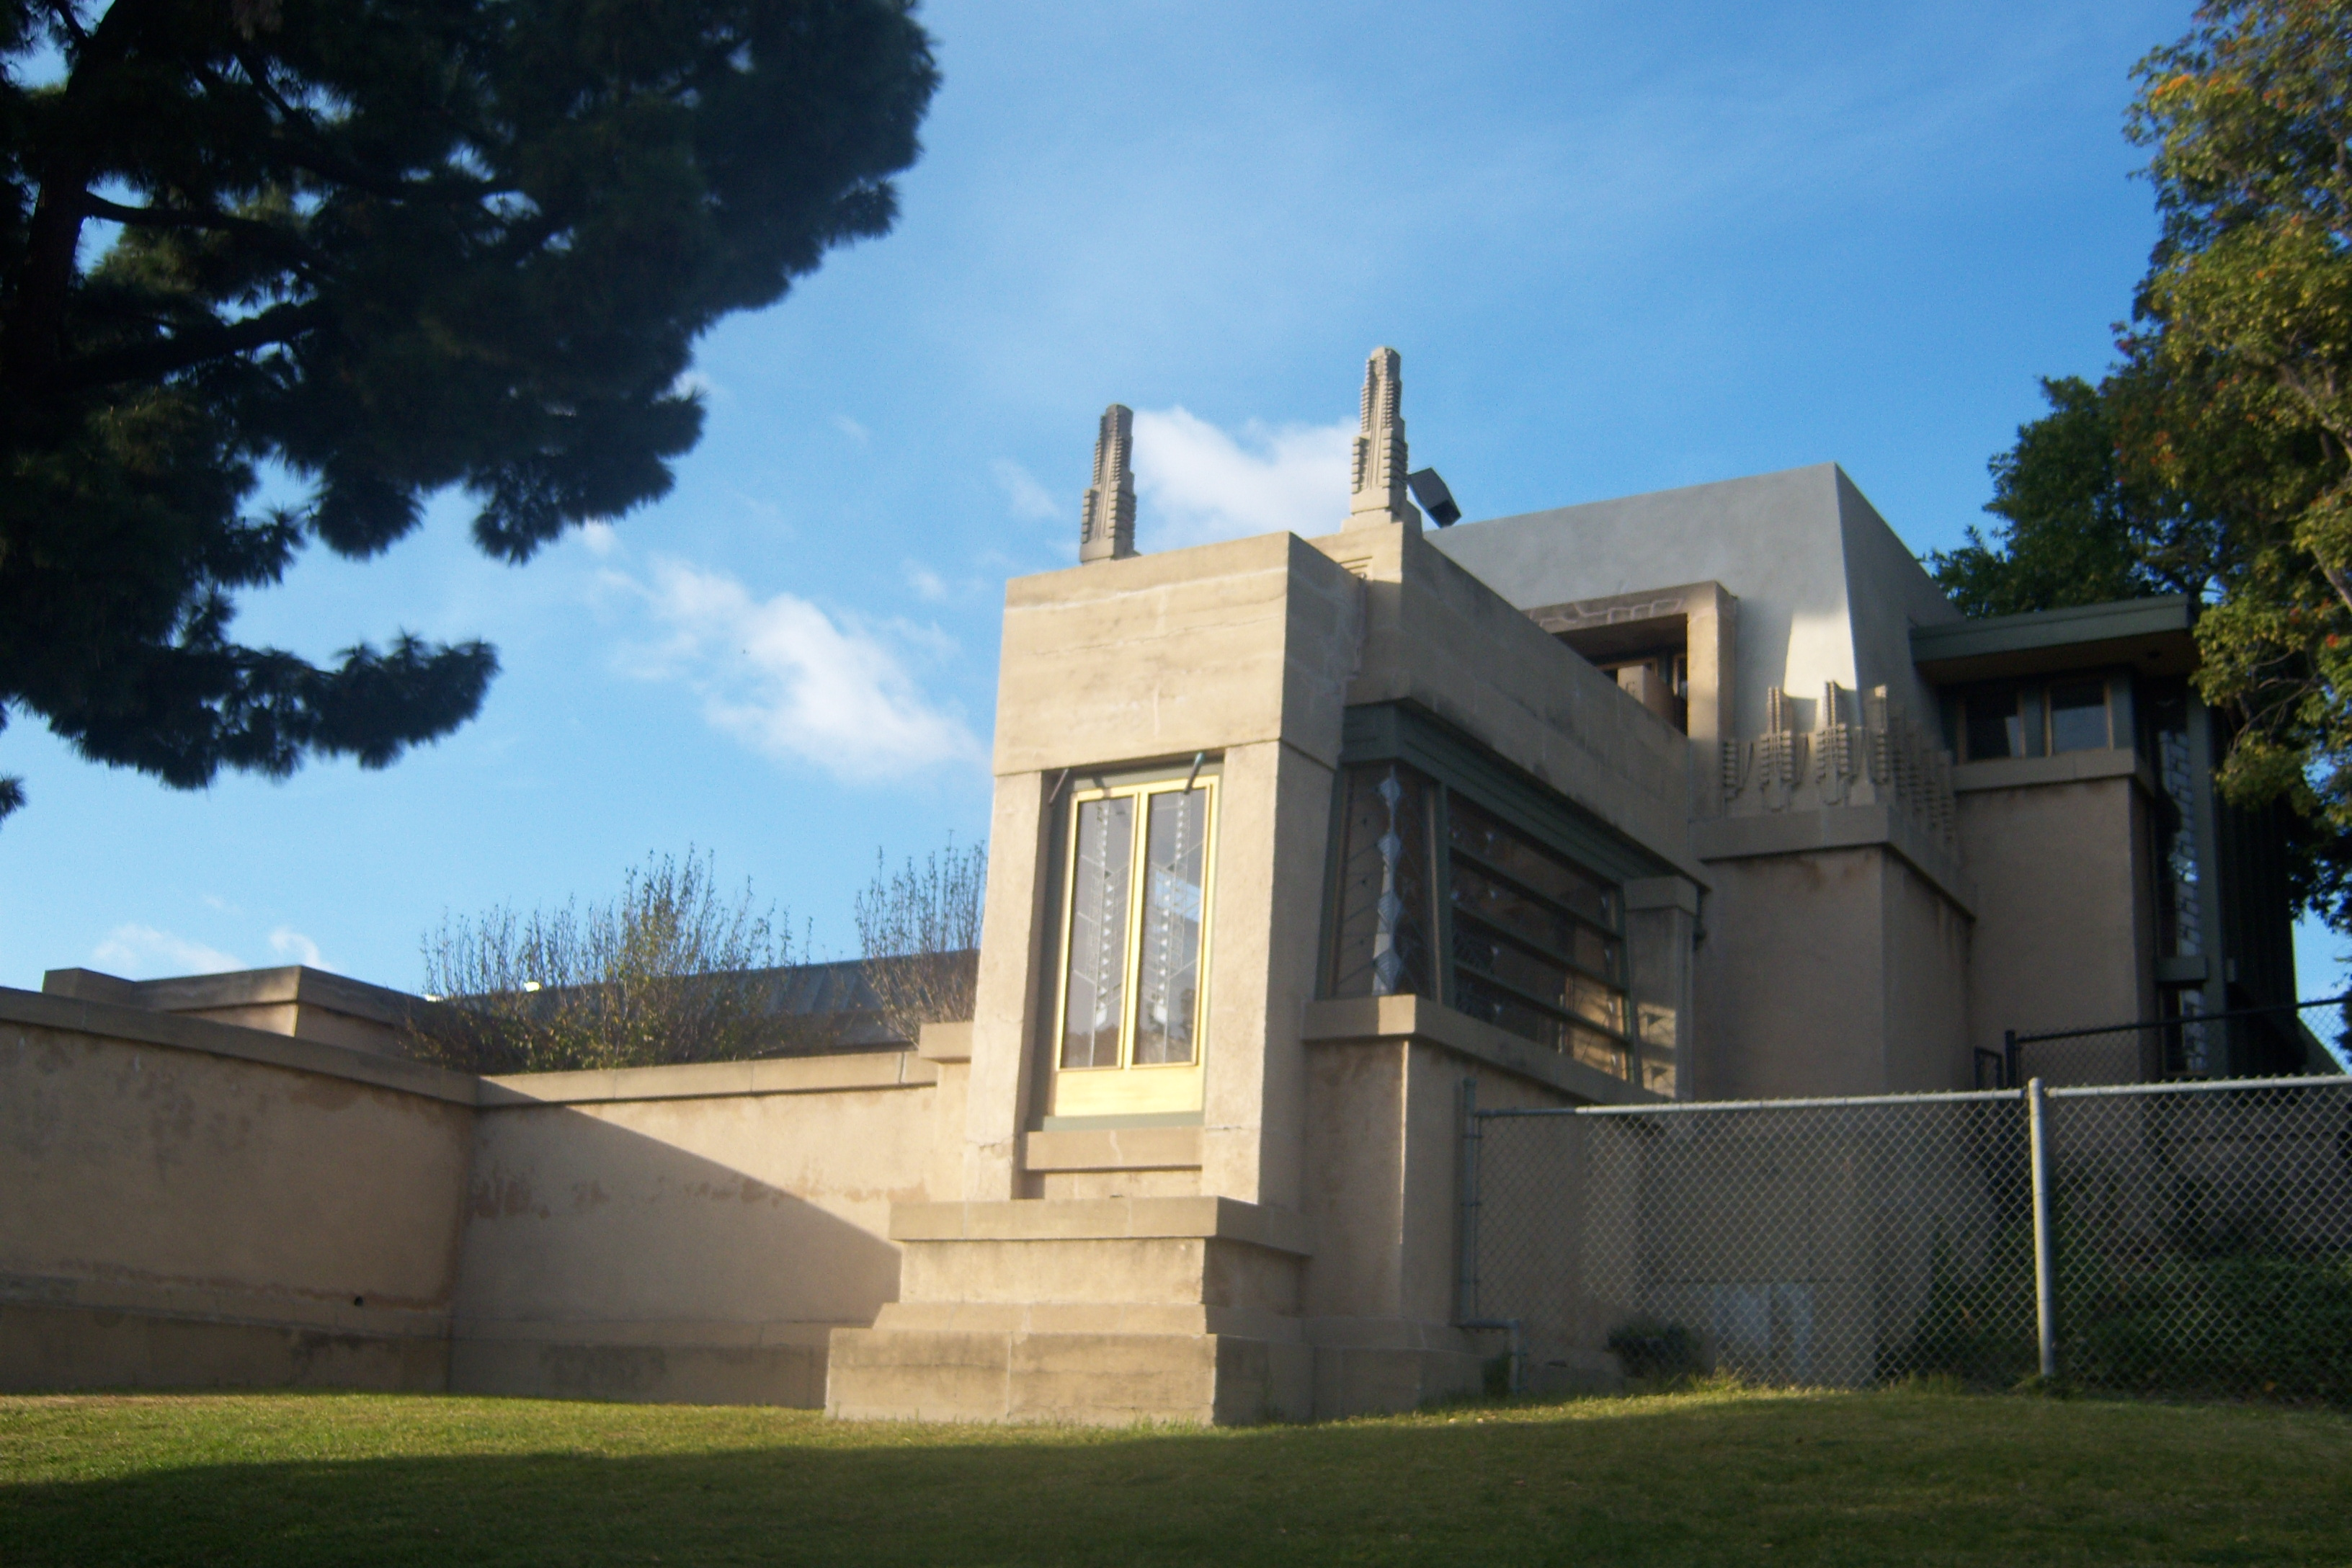 Hollyhock house gmf journal for Hollyhock house